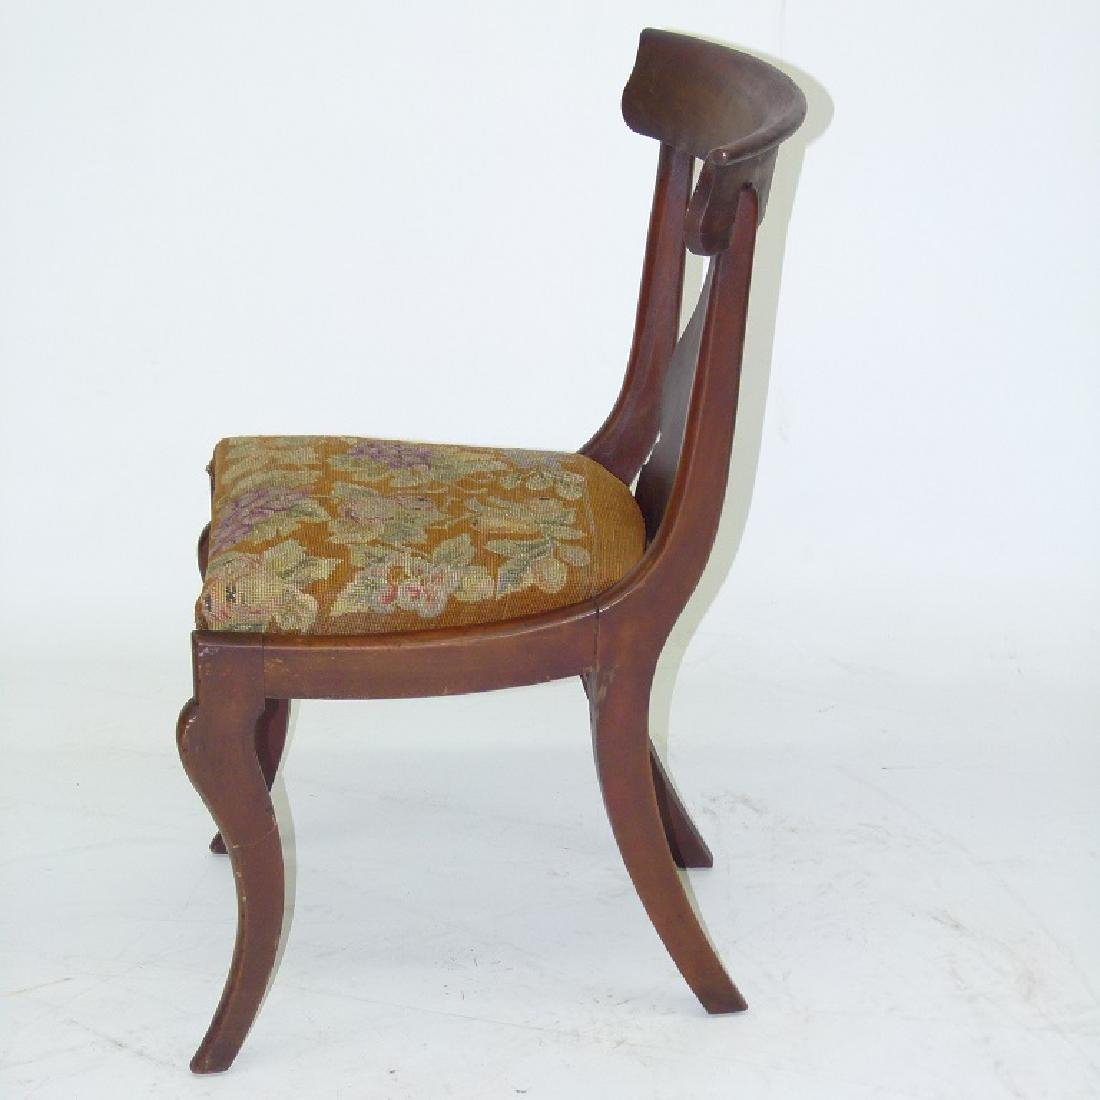 8 PHILADELPHIA CLASSICAL CARVED MAHOGANY CHAIRS - 7